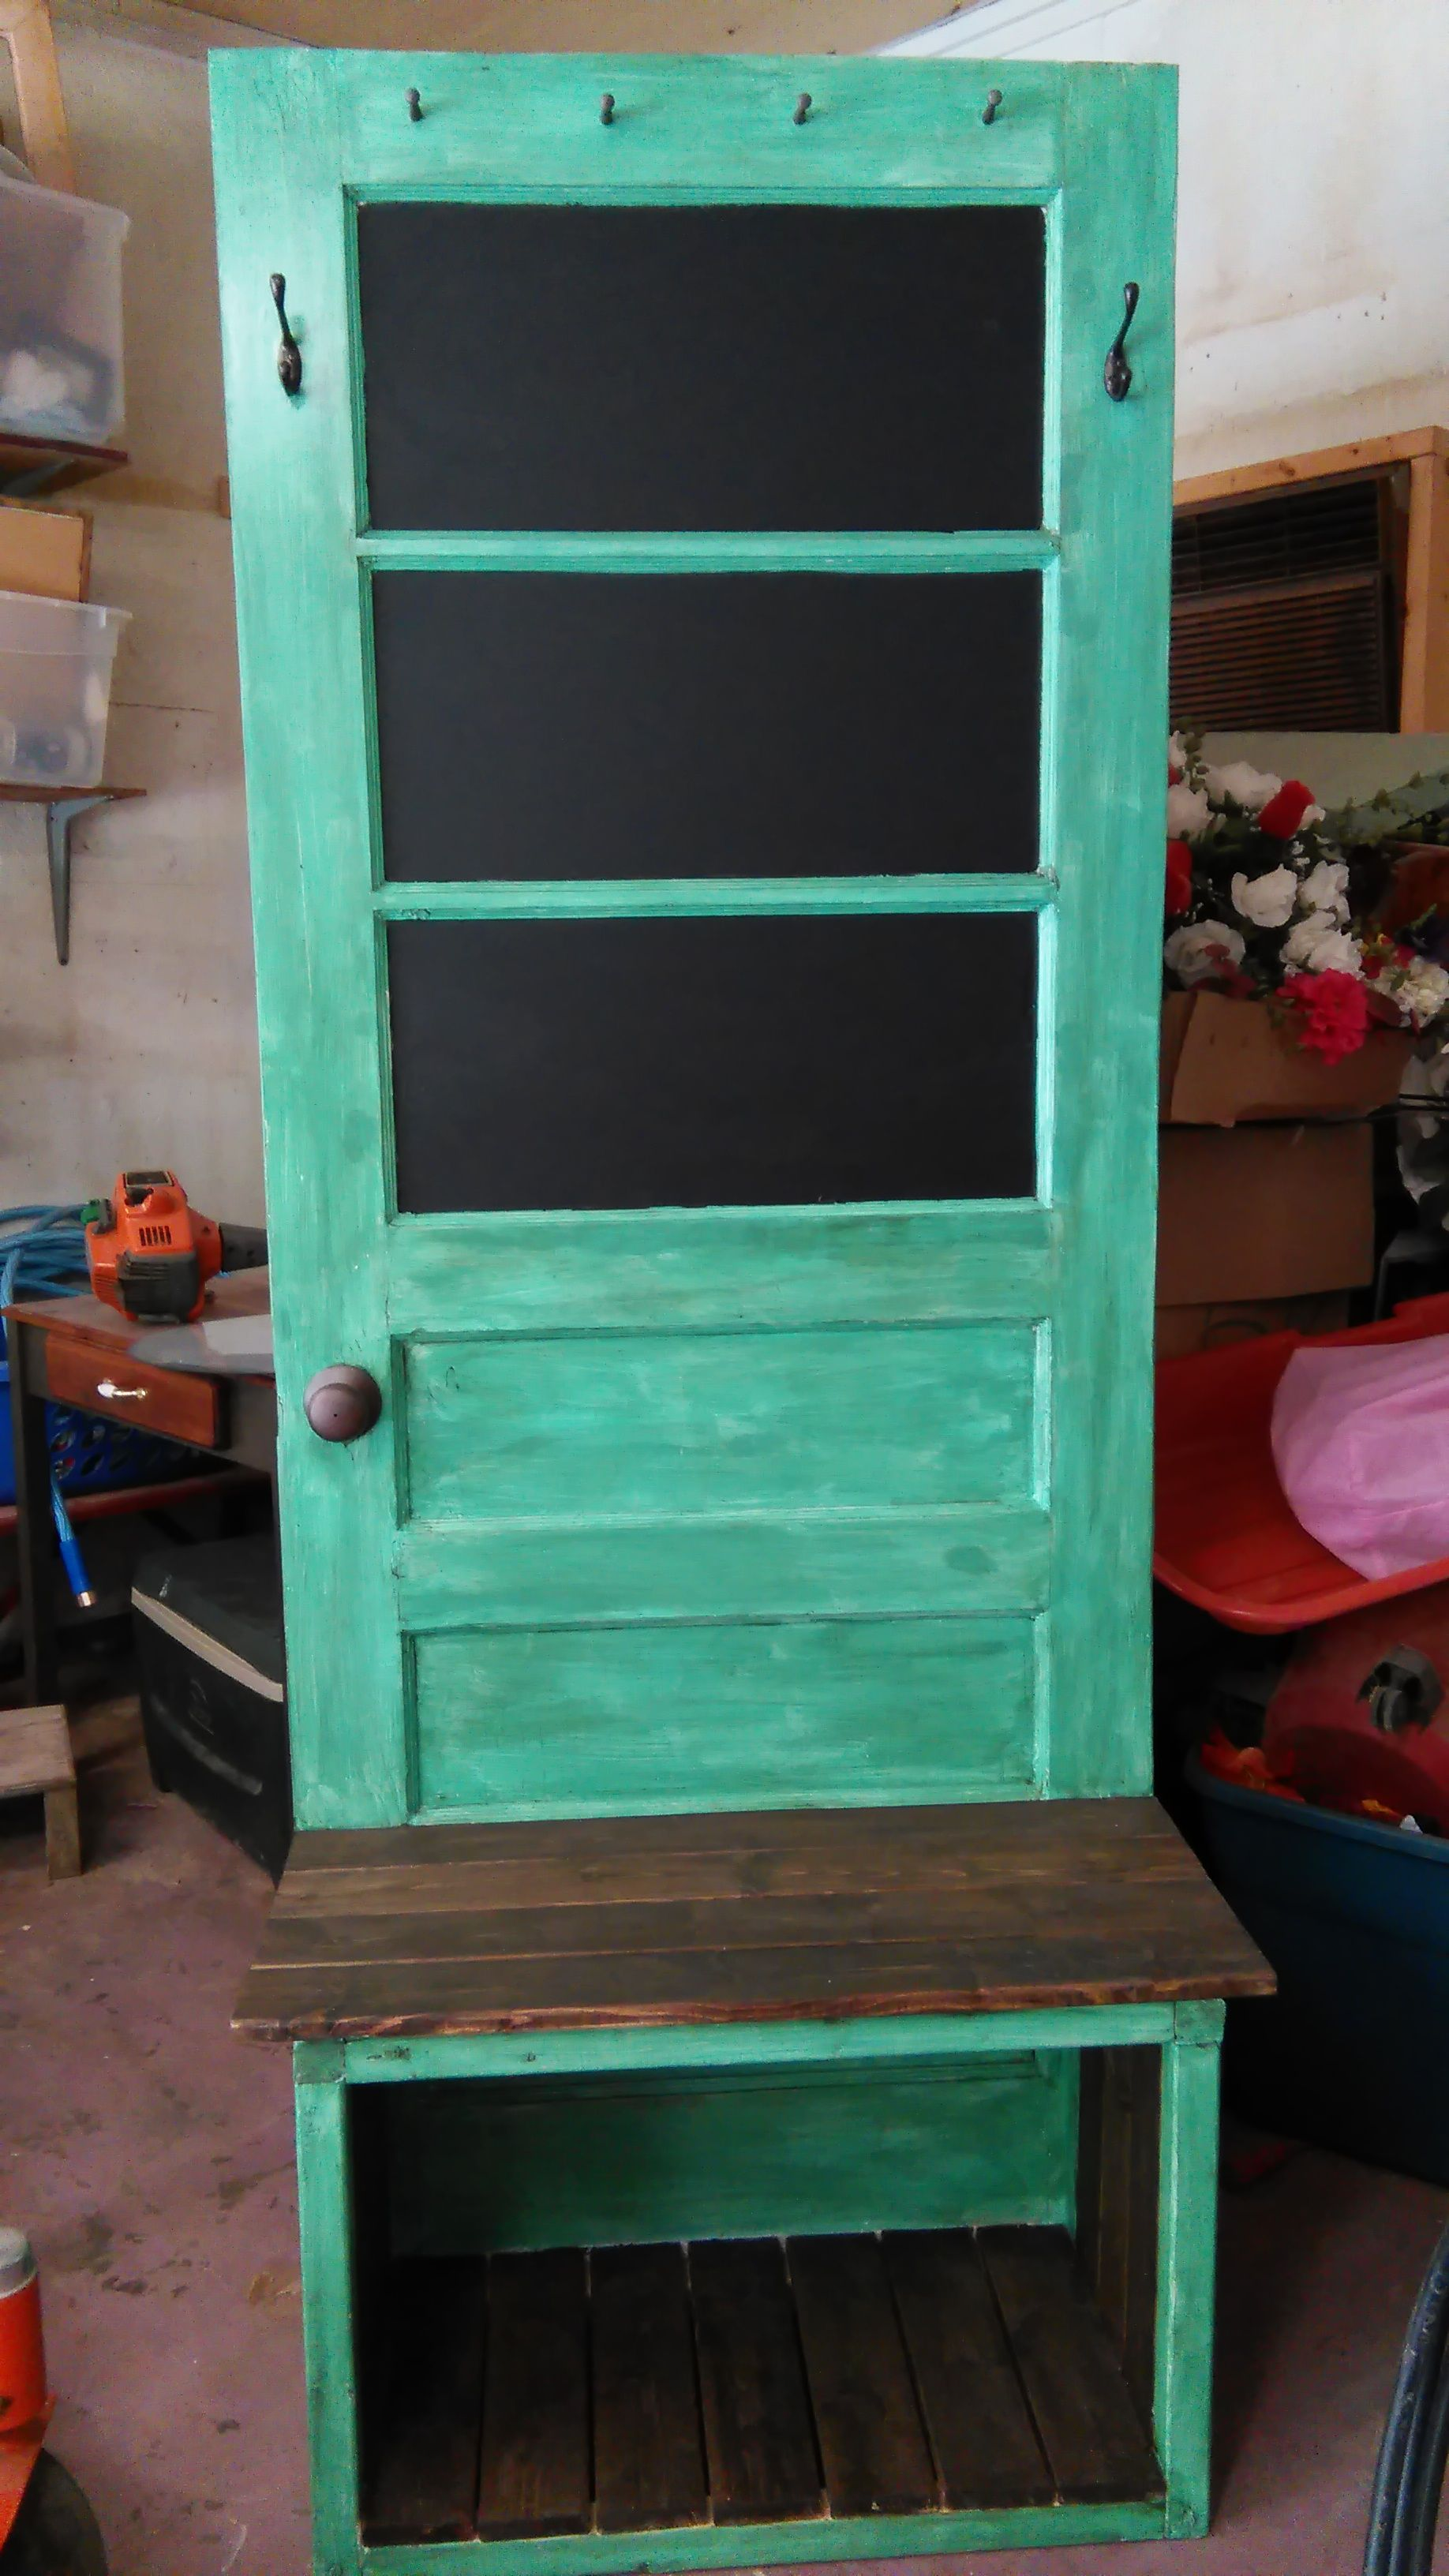 Standard kitchen window height  seafoam colored hall tree from old door  home  pinterest  hall